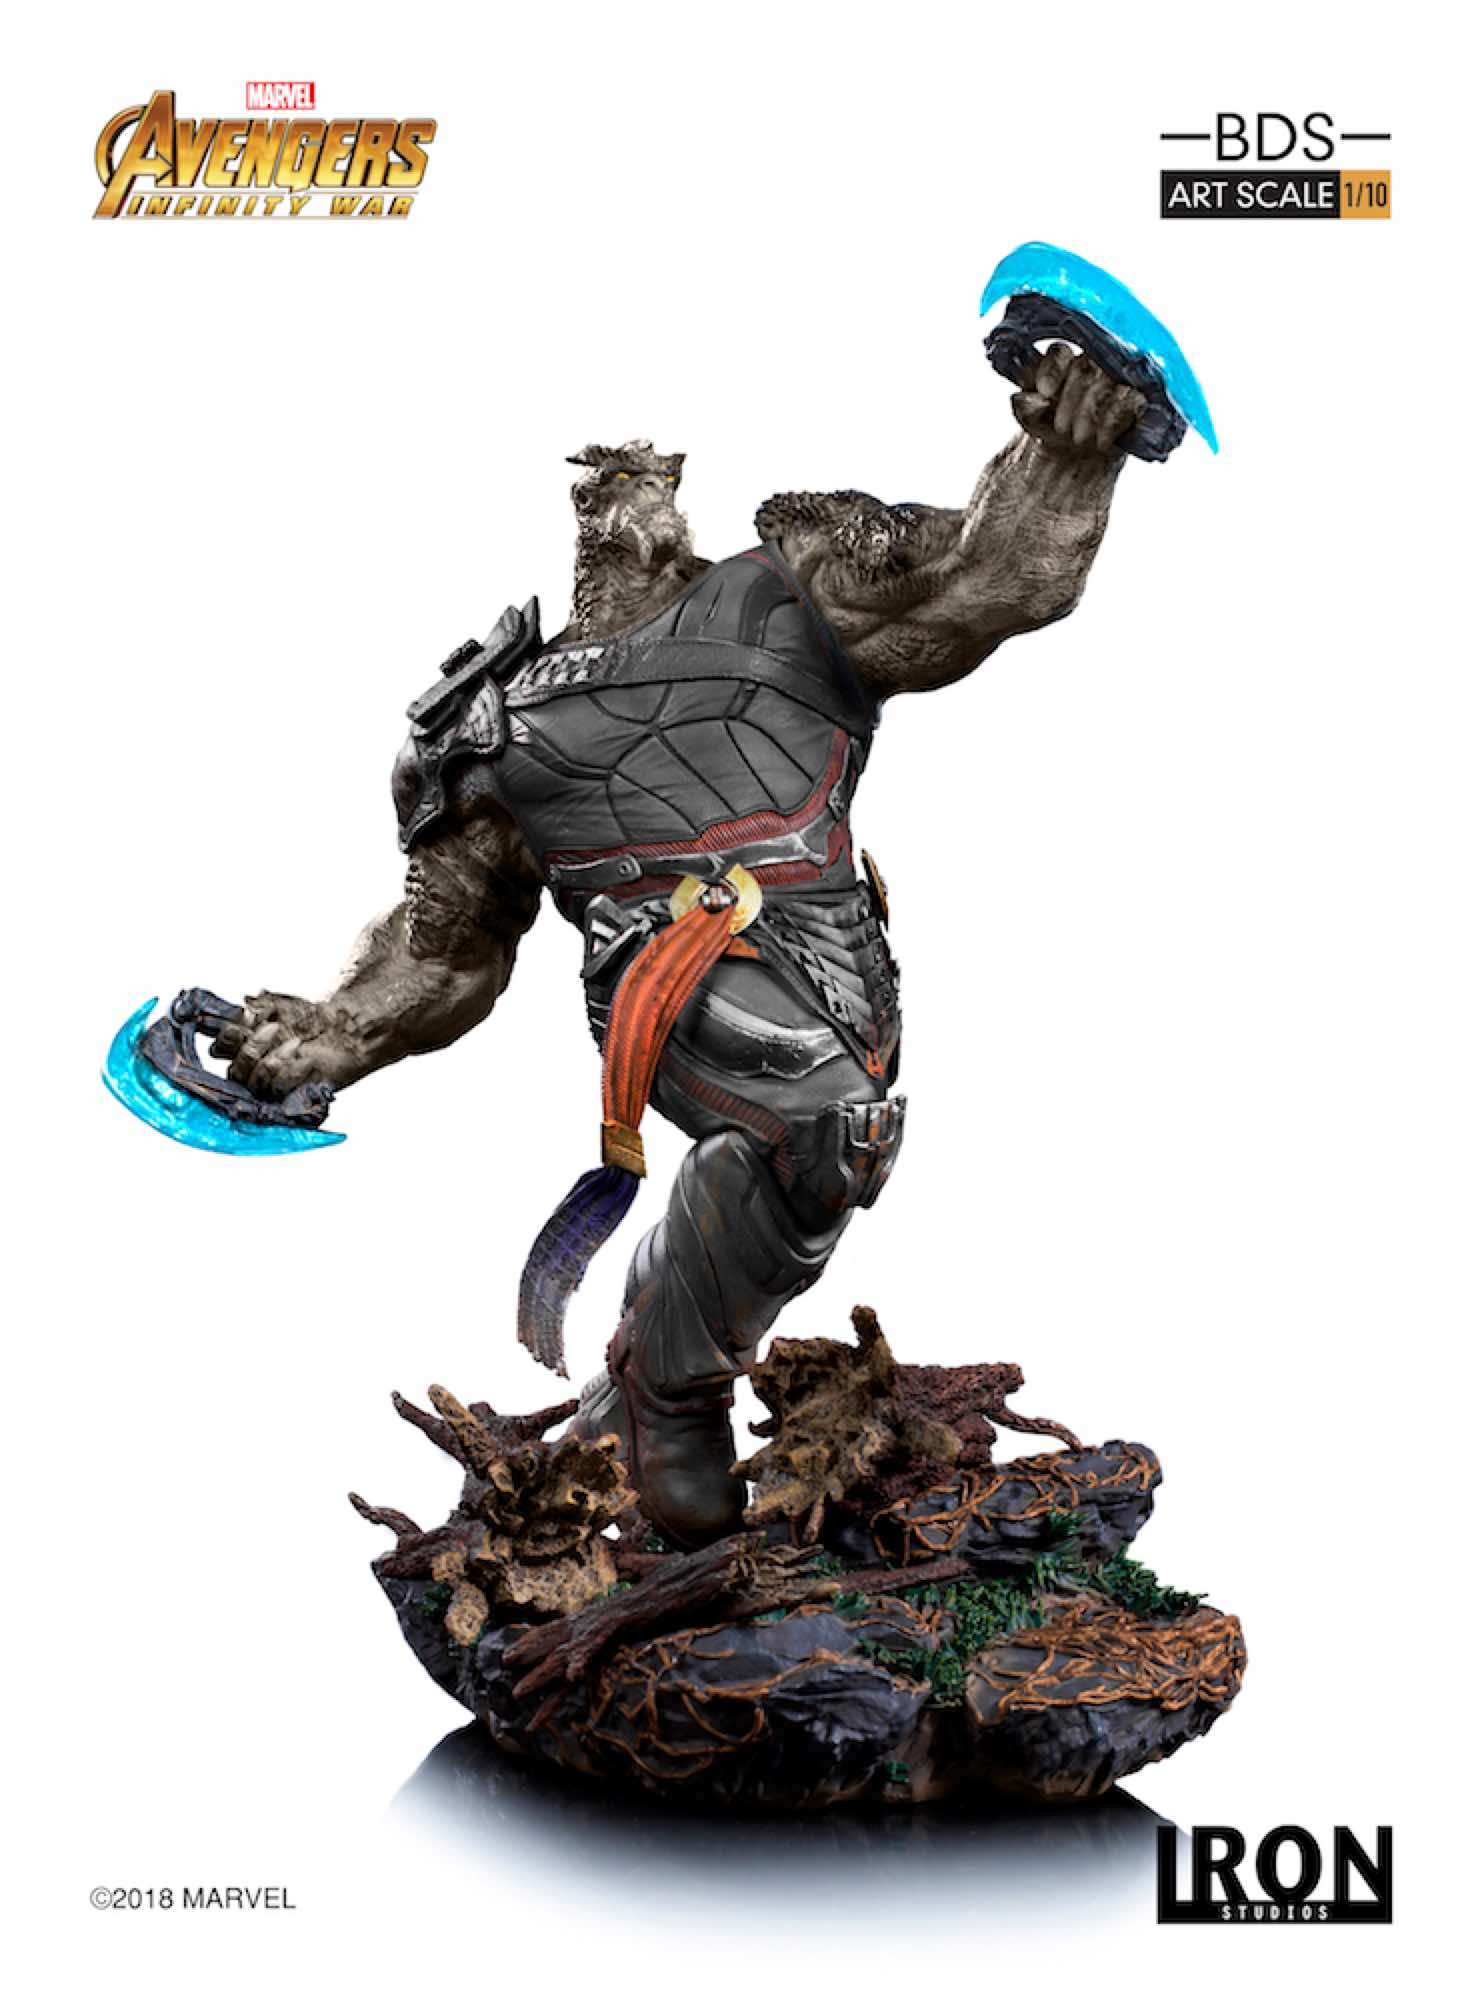 CULL OBSIDIAN FIG 40 CM AVENGERS INFINITY WAR IRON STUDIOS BDS 1/10 ART SCALE